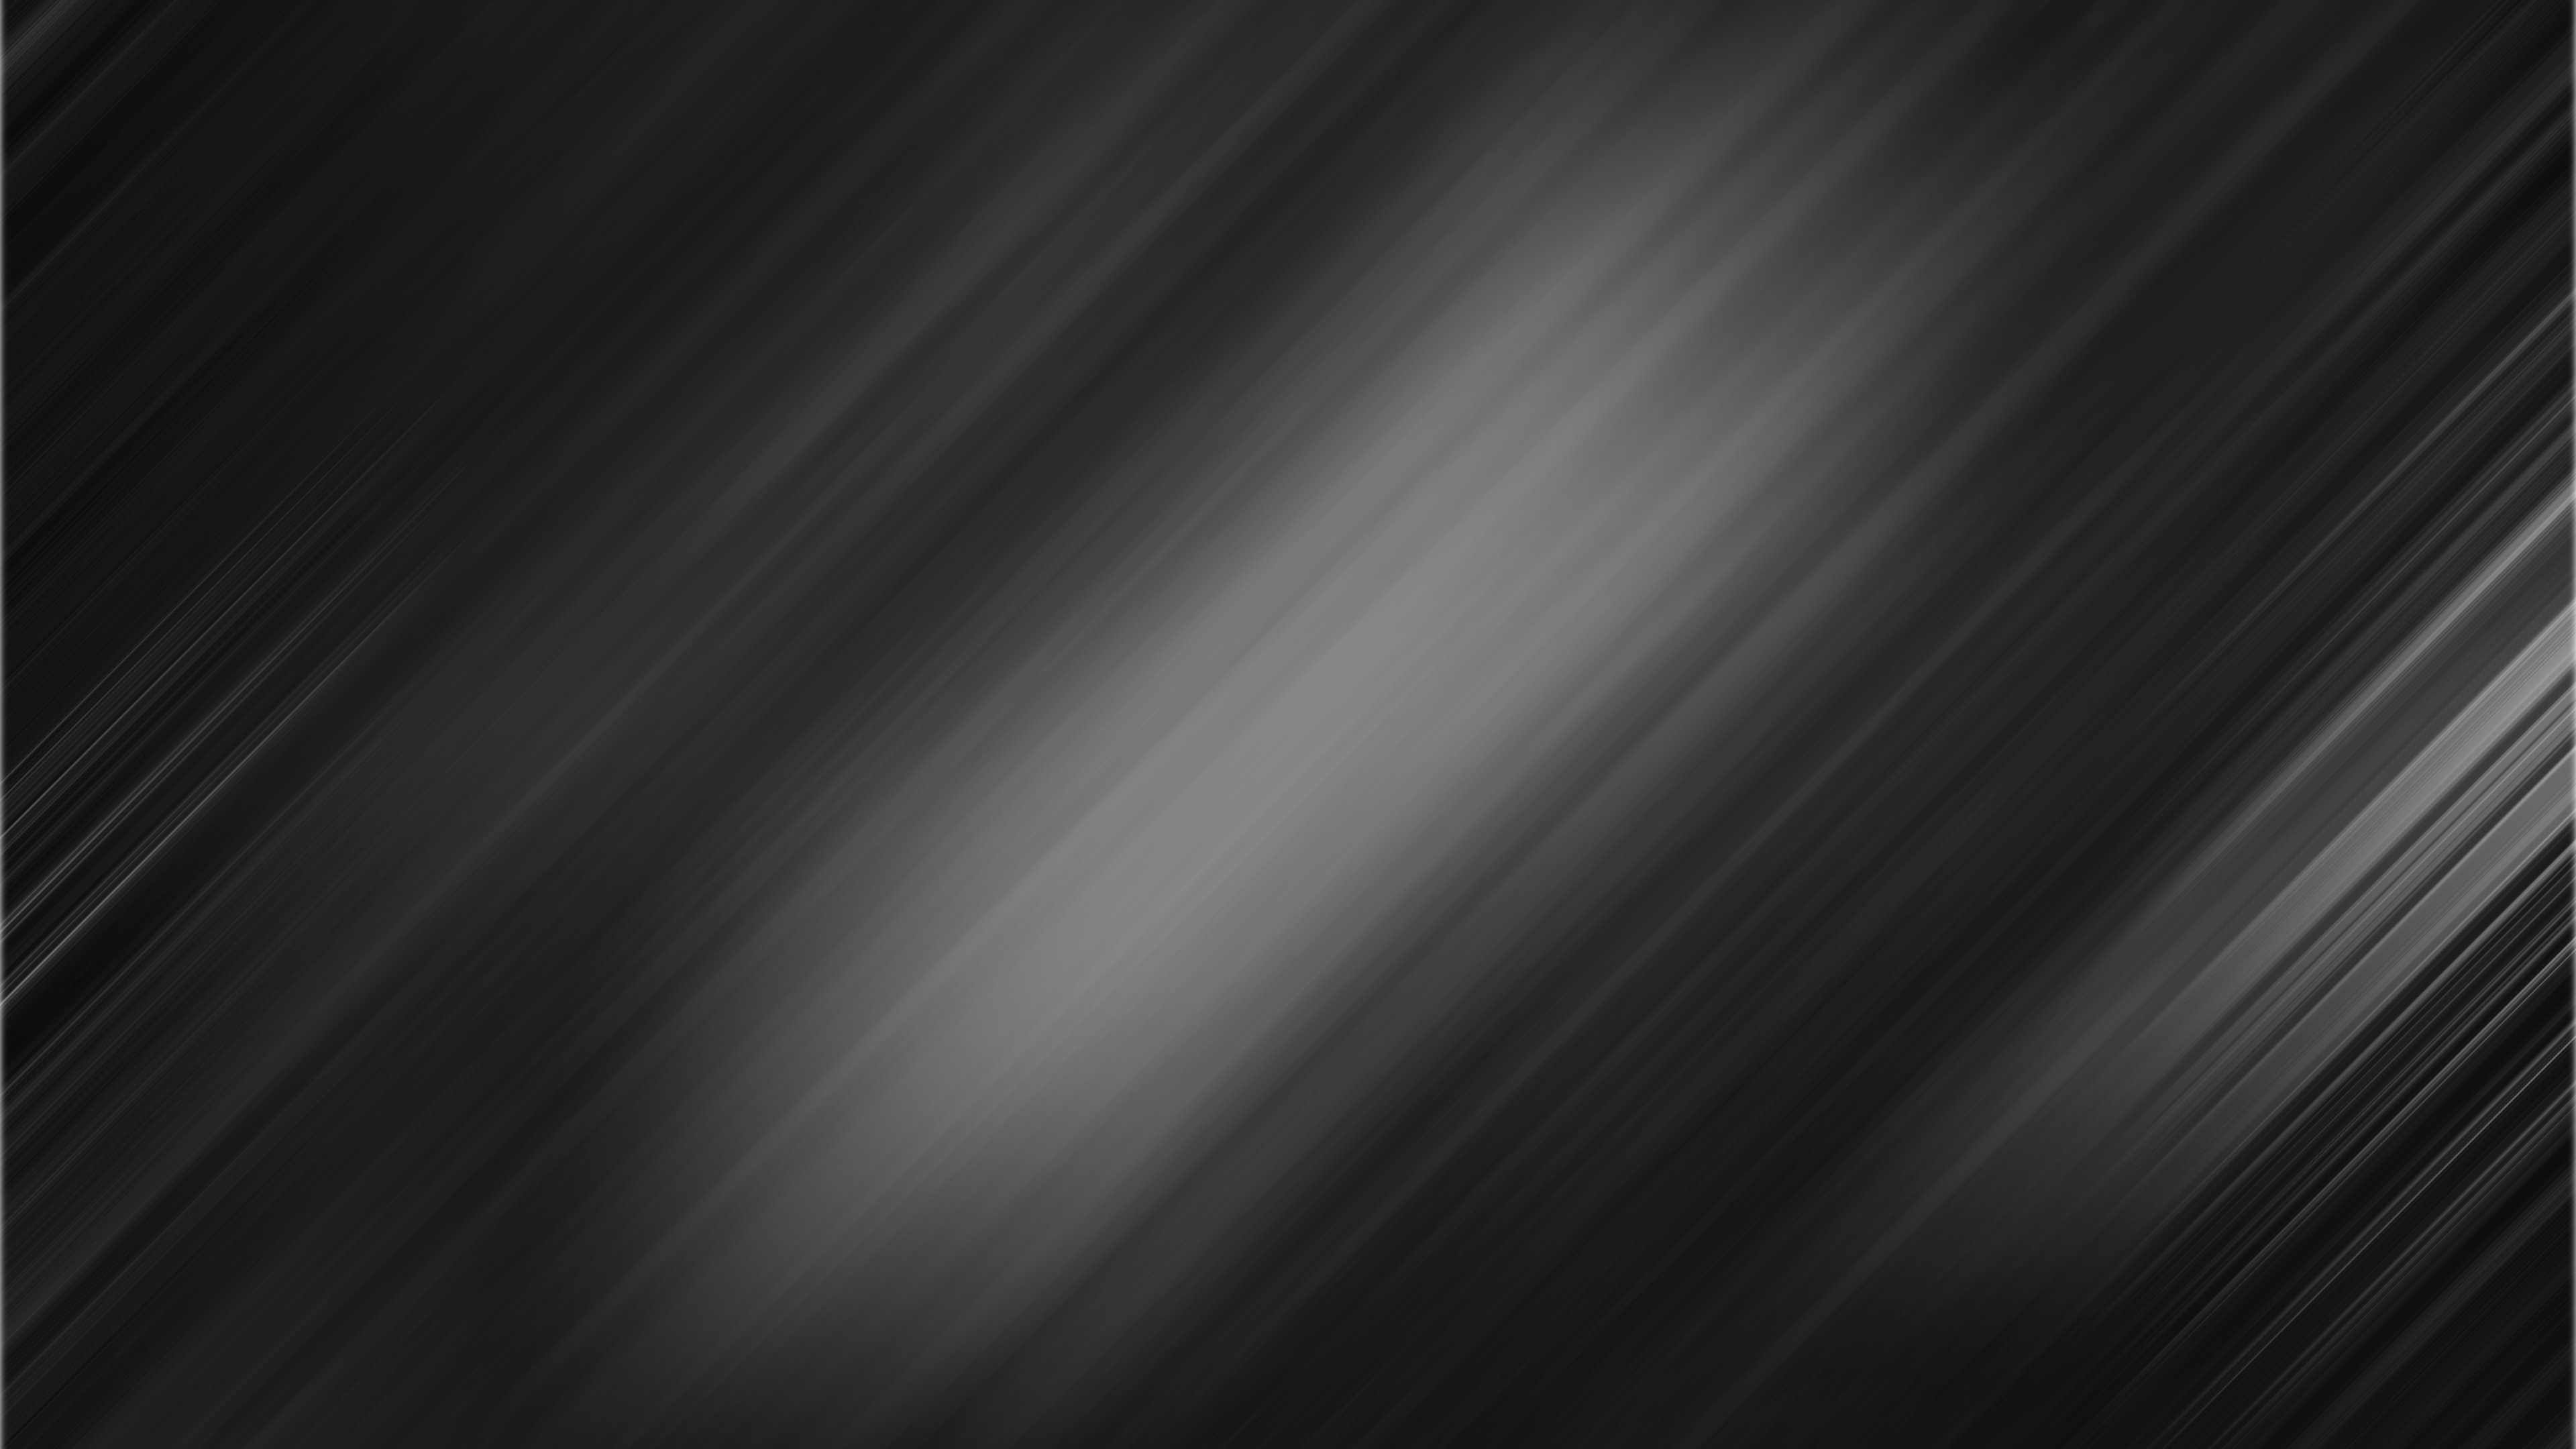 Wallpaper 4k Graphite Abstract Dark 4k 4k Wallpapers 5k